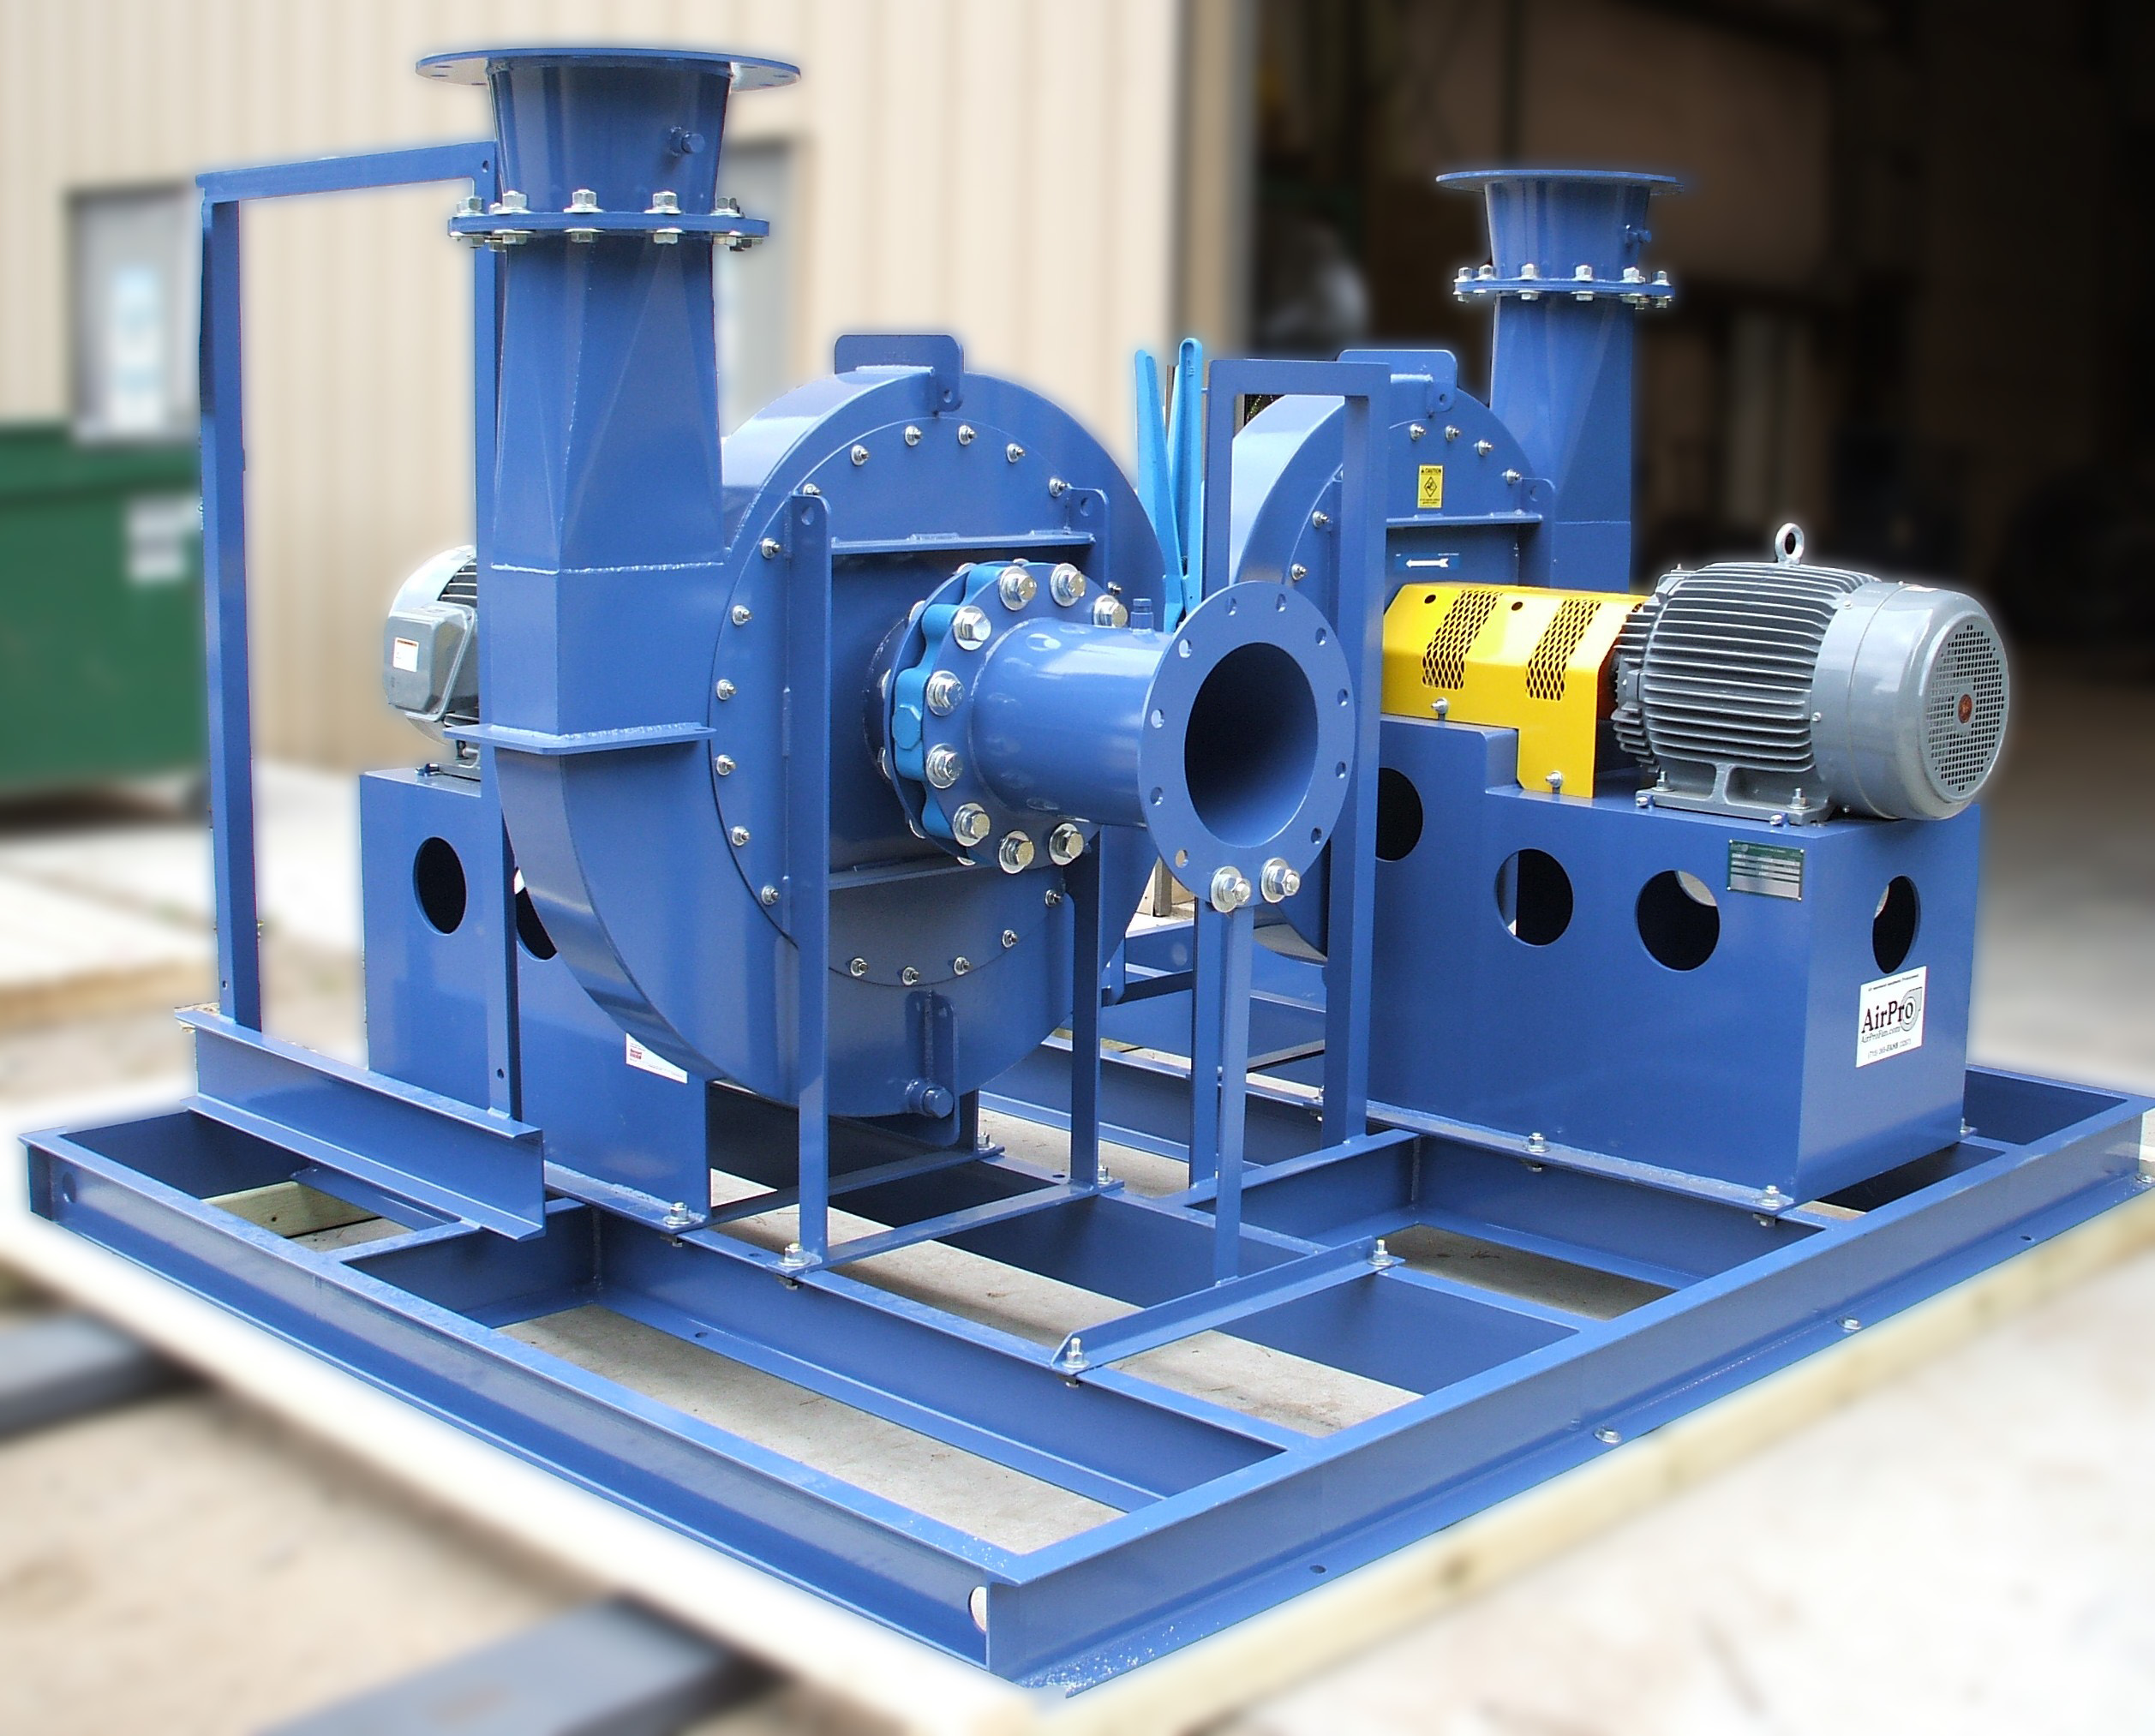 High Pressure Centrifugal Blowers : High pressure blower radial shrouded airpro fan